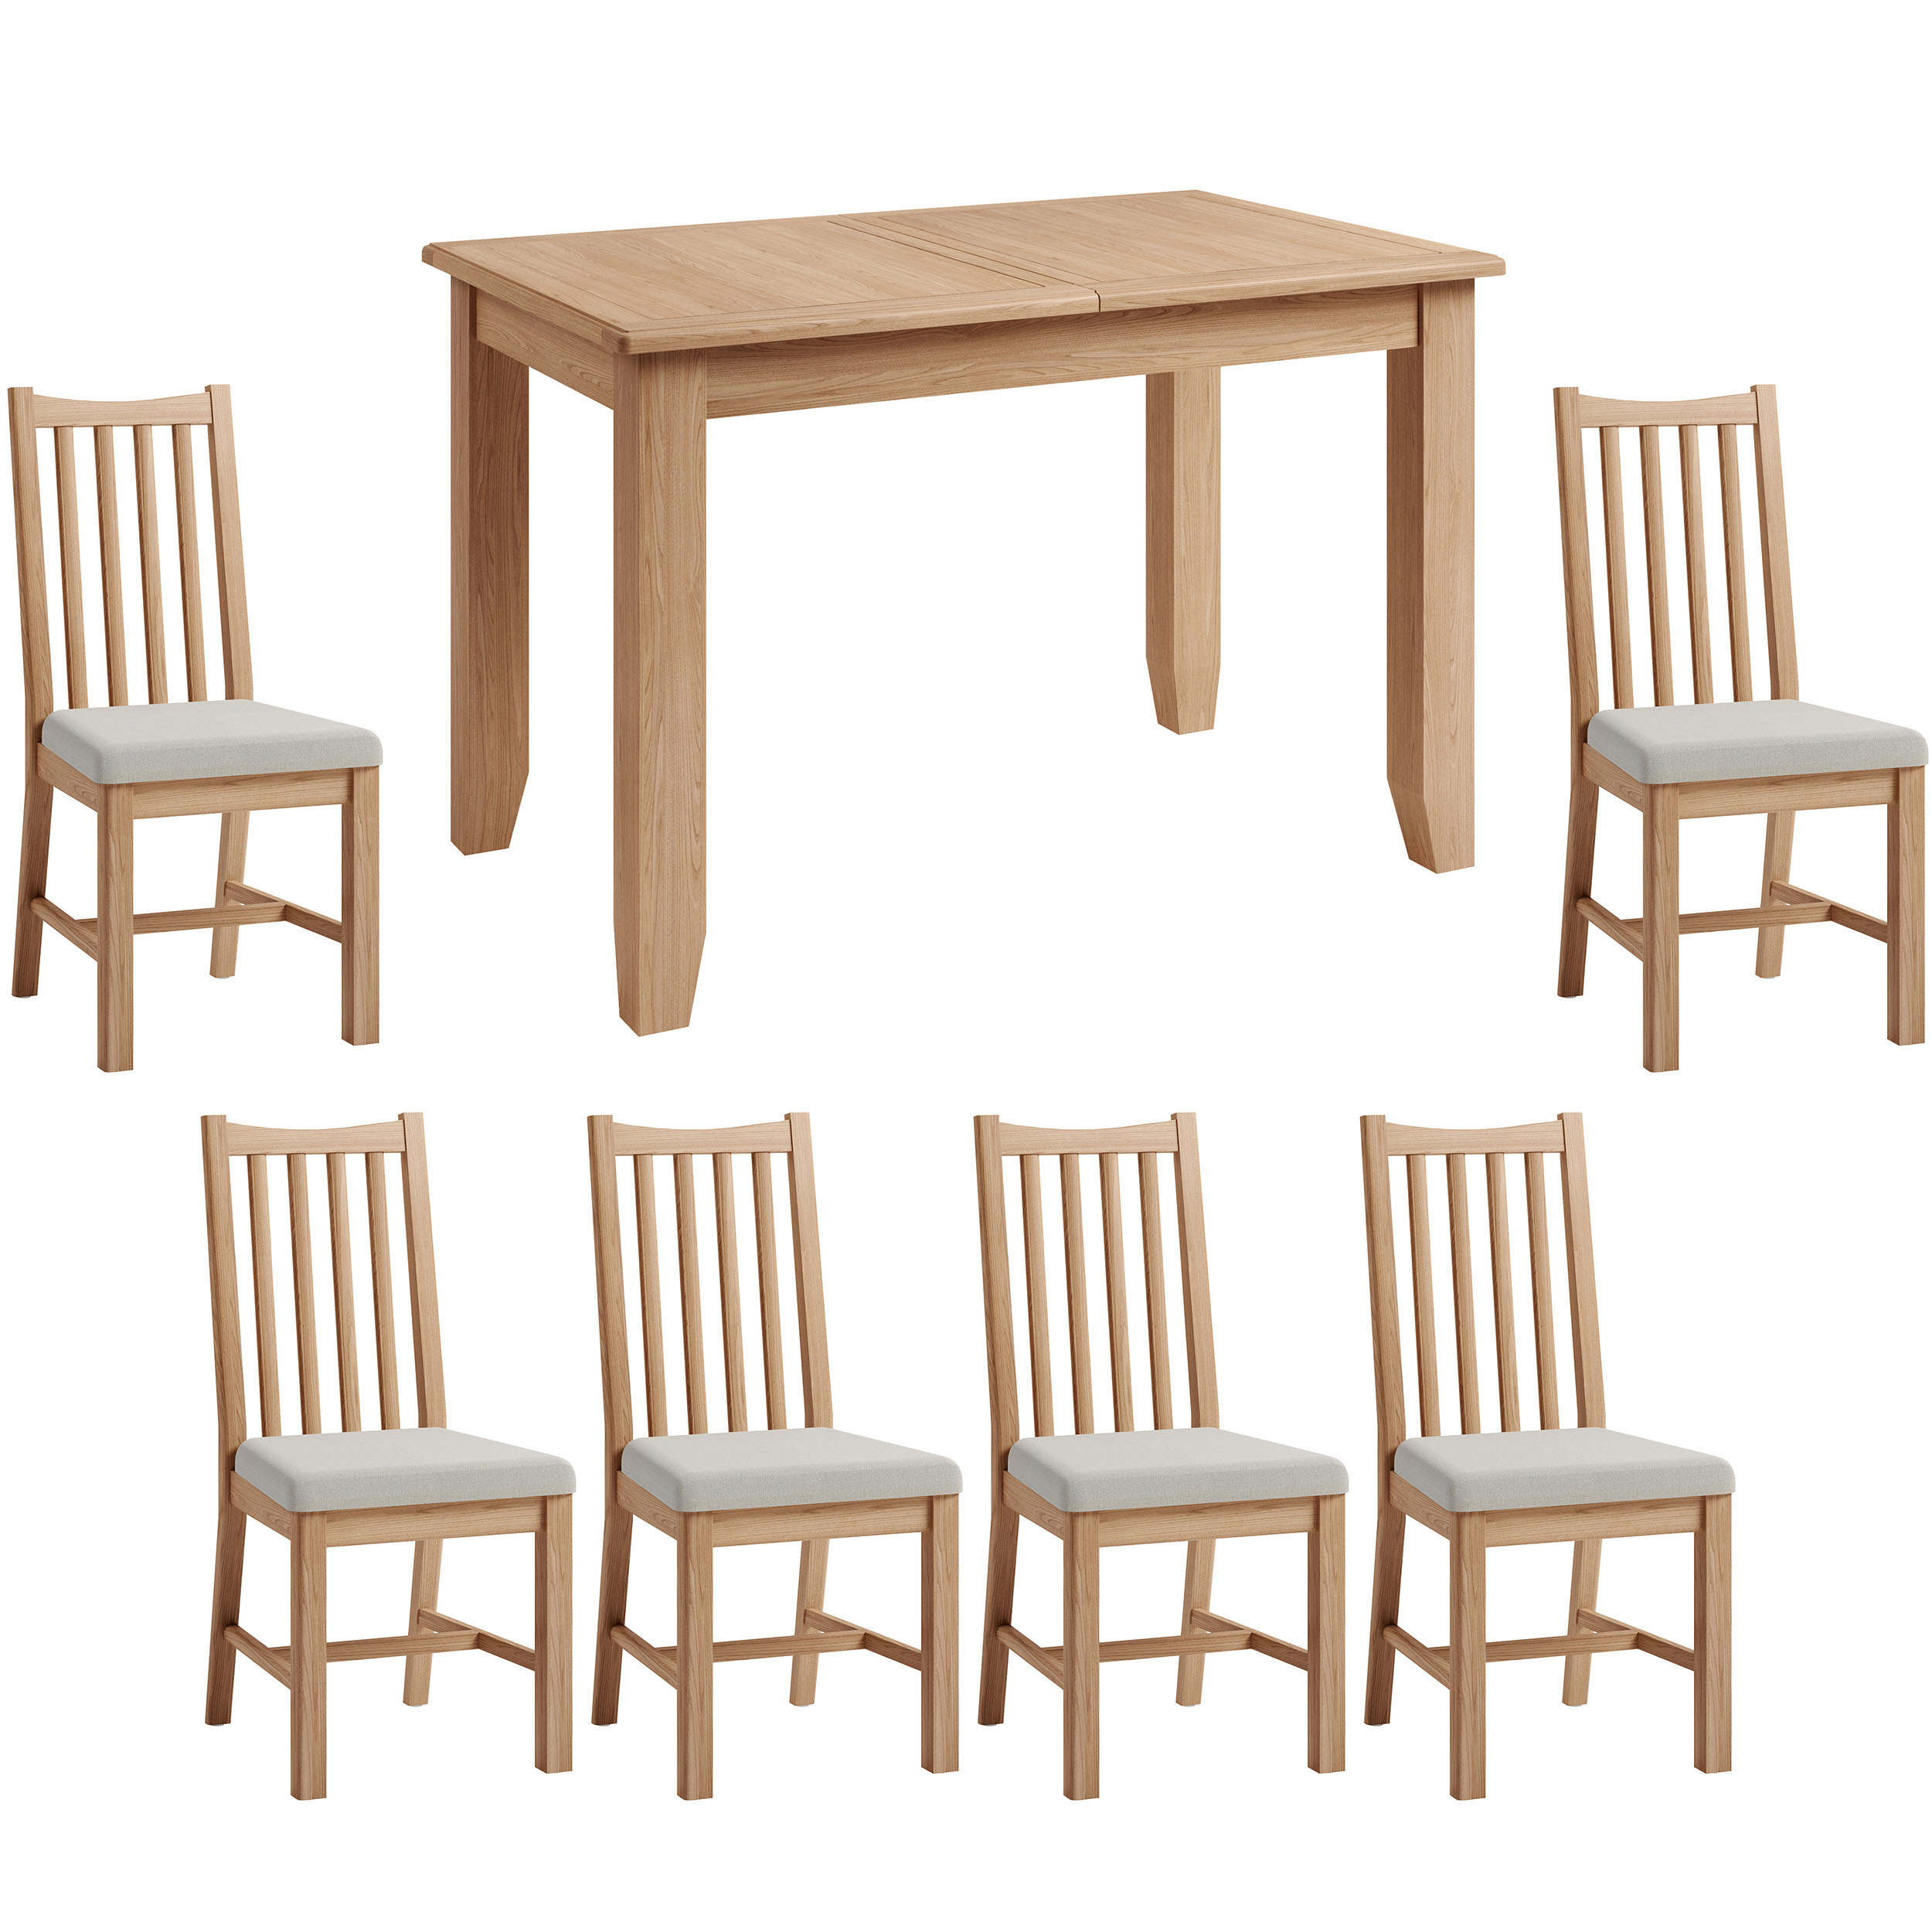 Hurstley 1.2m Table and x6 Chairs Dining Set